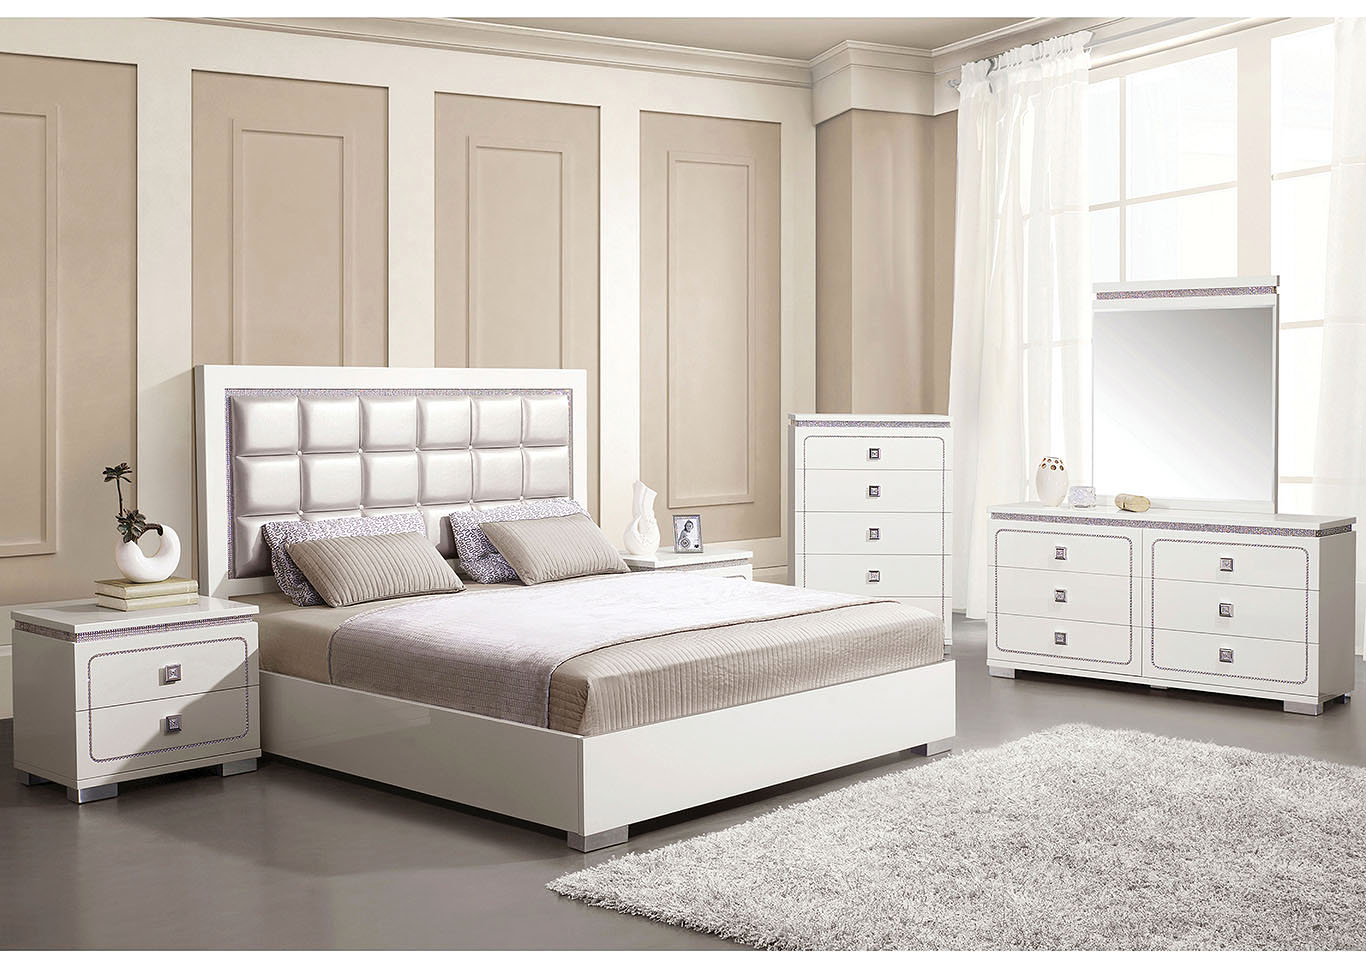 Valentina Pearl PU & White High Gloss Queen Bed,Acme